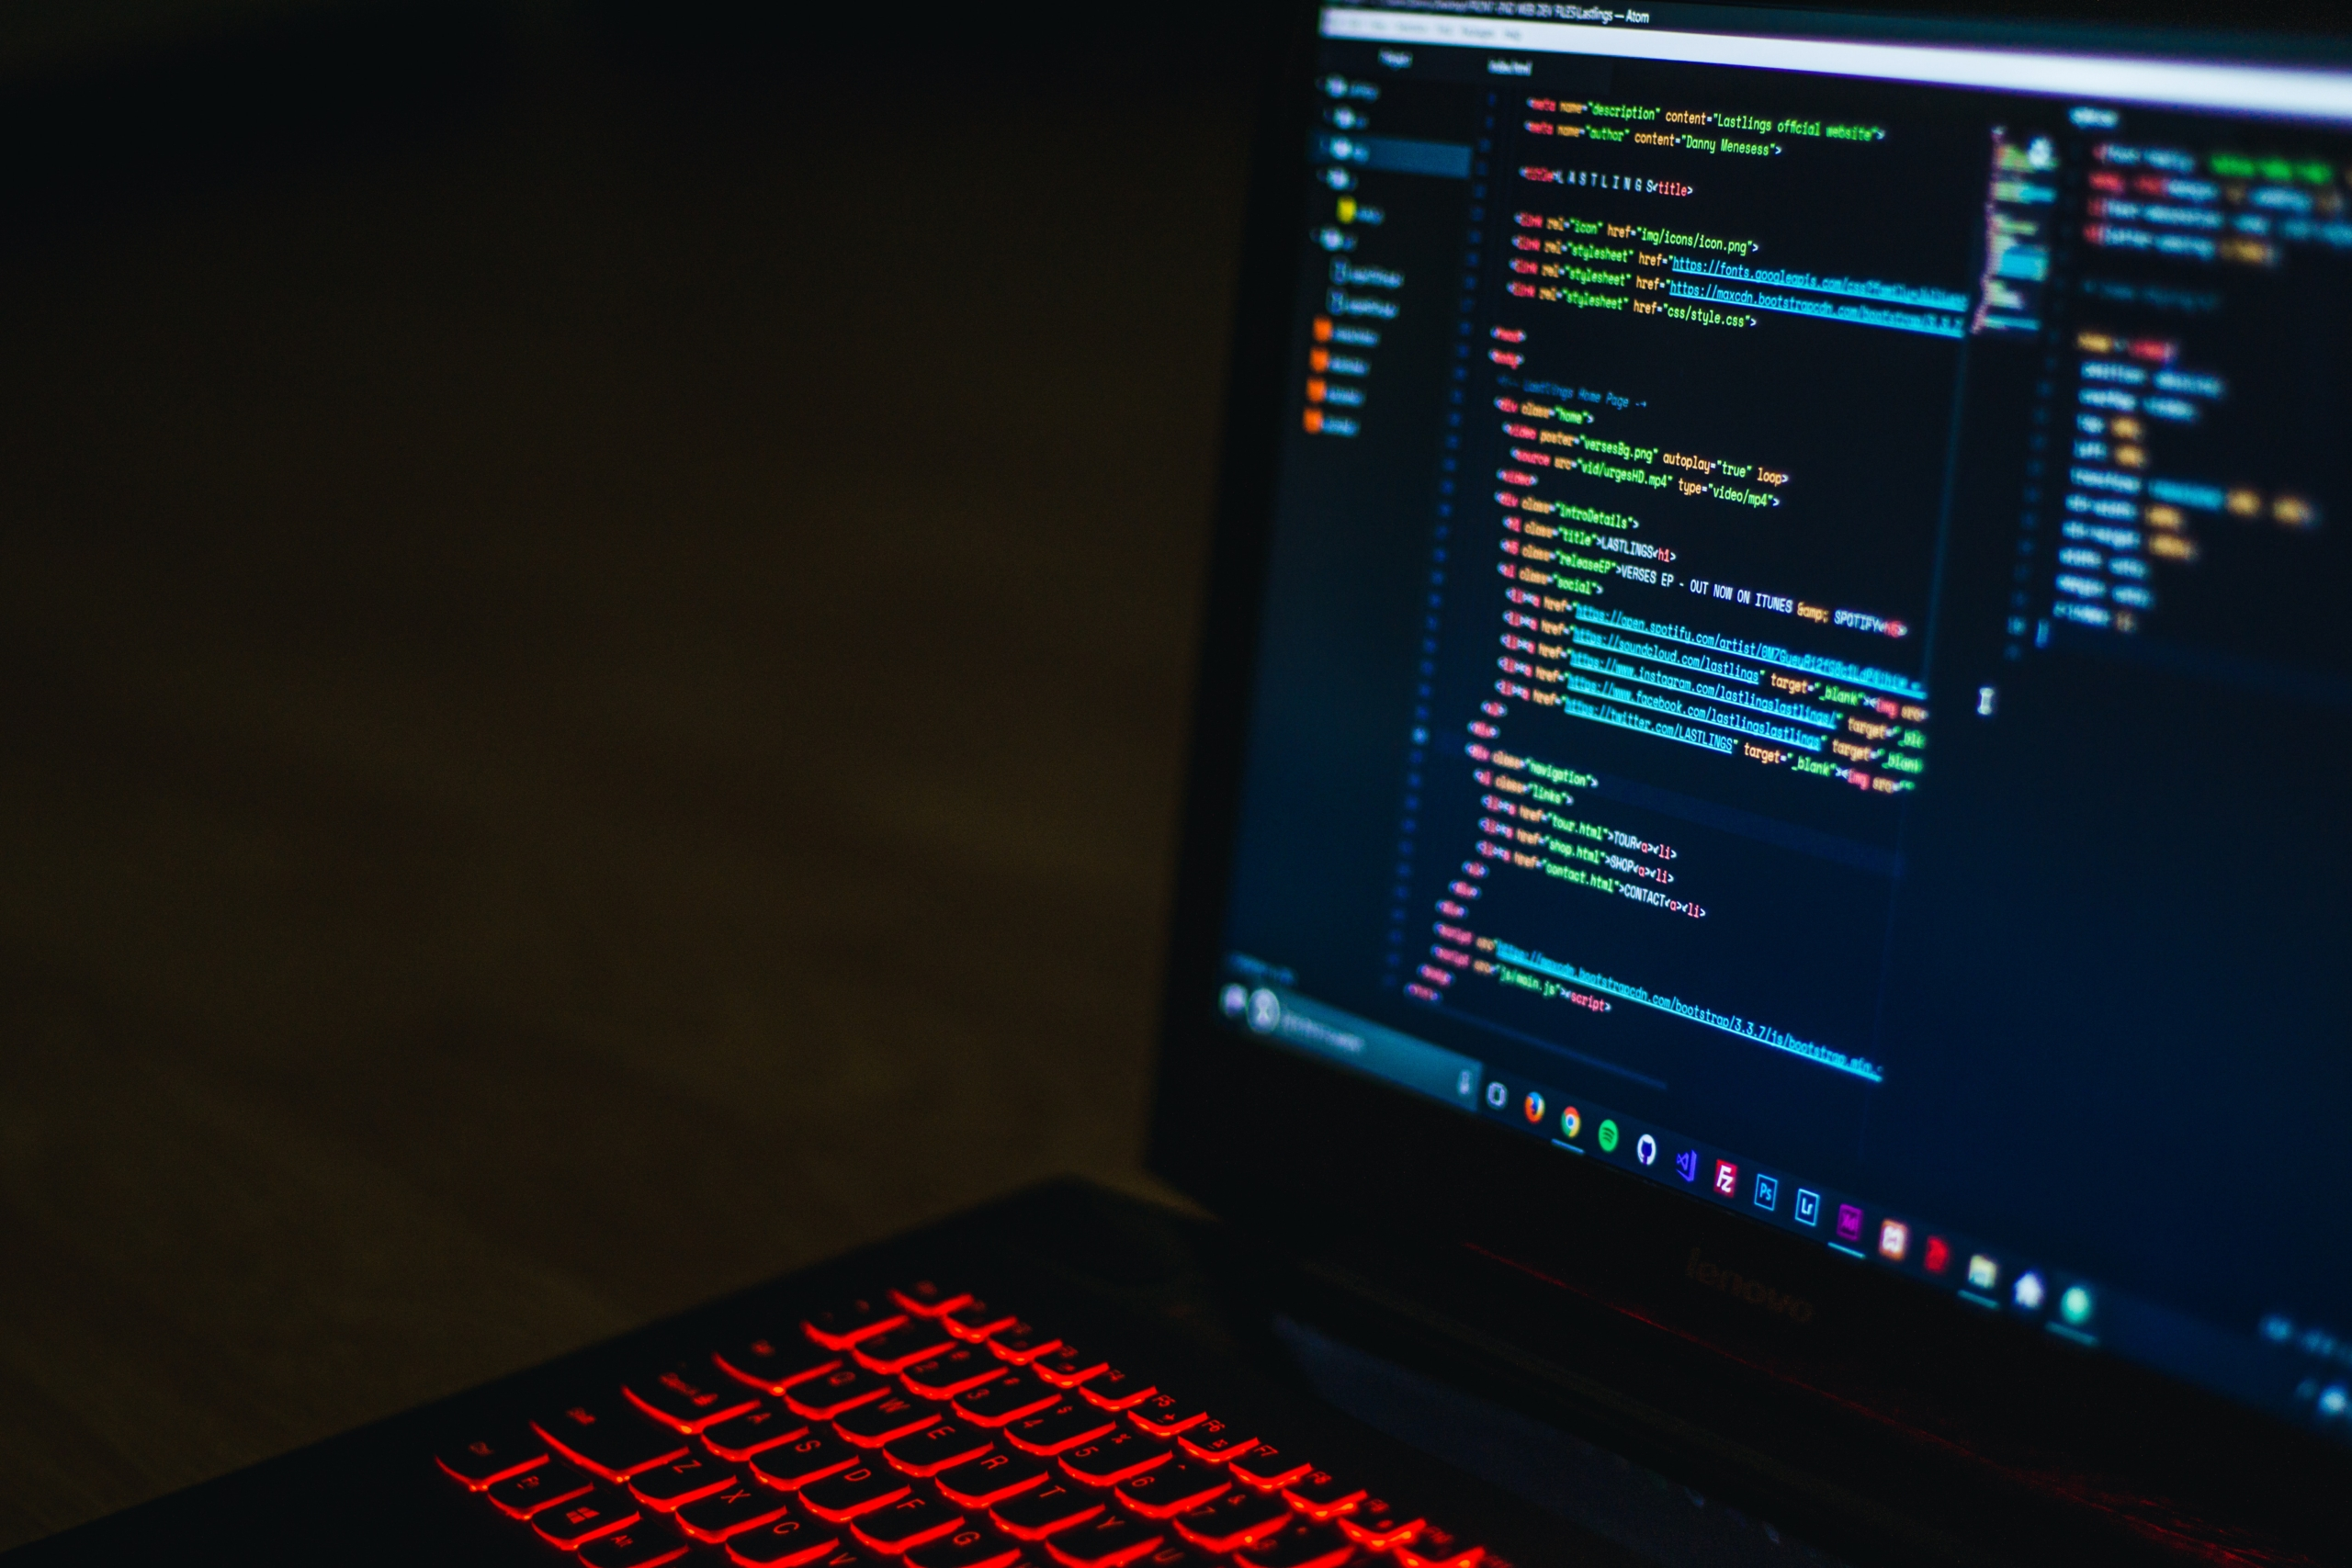 A laptop in the dark with code on screen